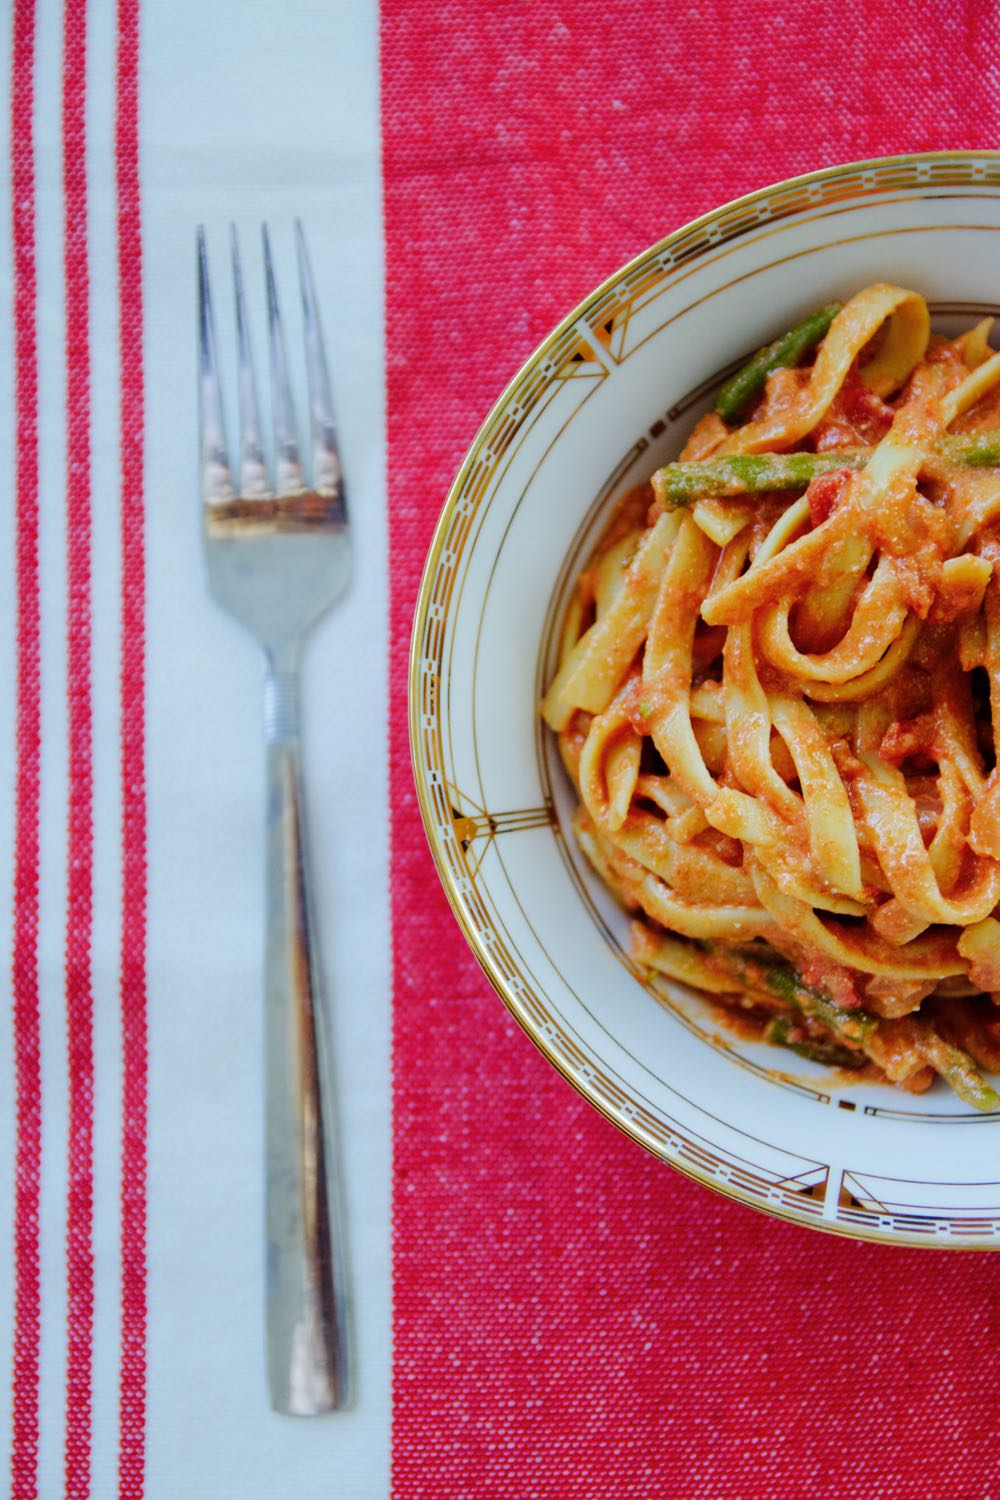 fettuccine with sweet tomato sauce, ricotta and asparagus on a red and white tablecloth